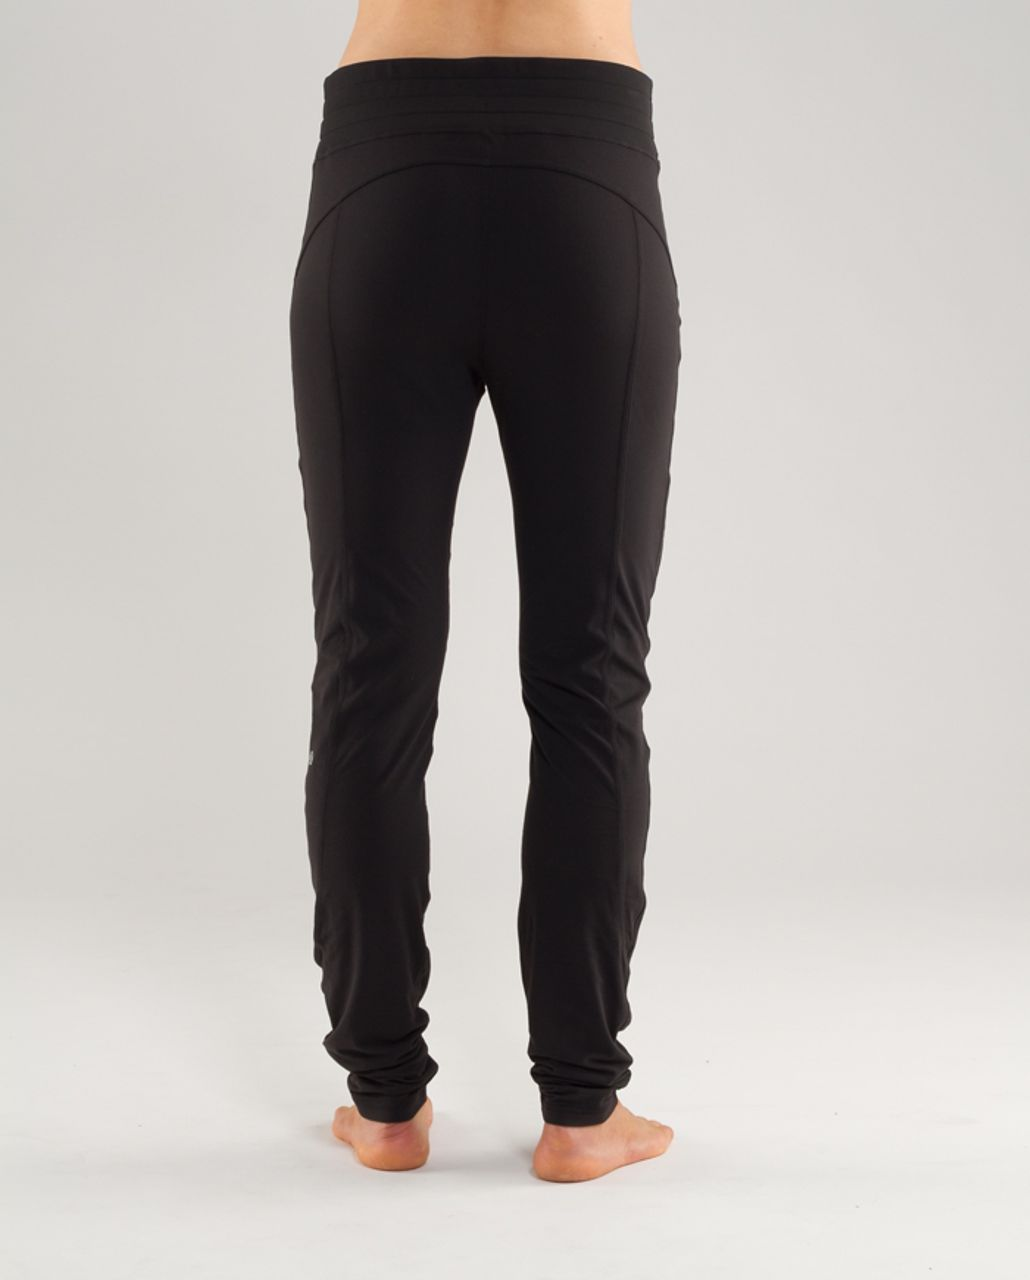 Lululemon Hang Loose Pant - Black